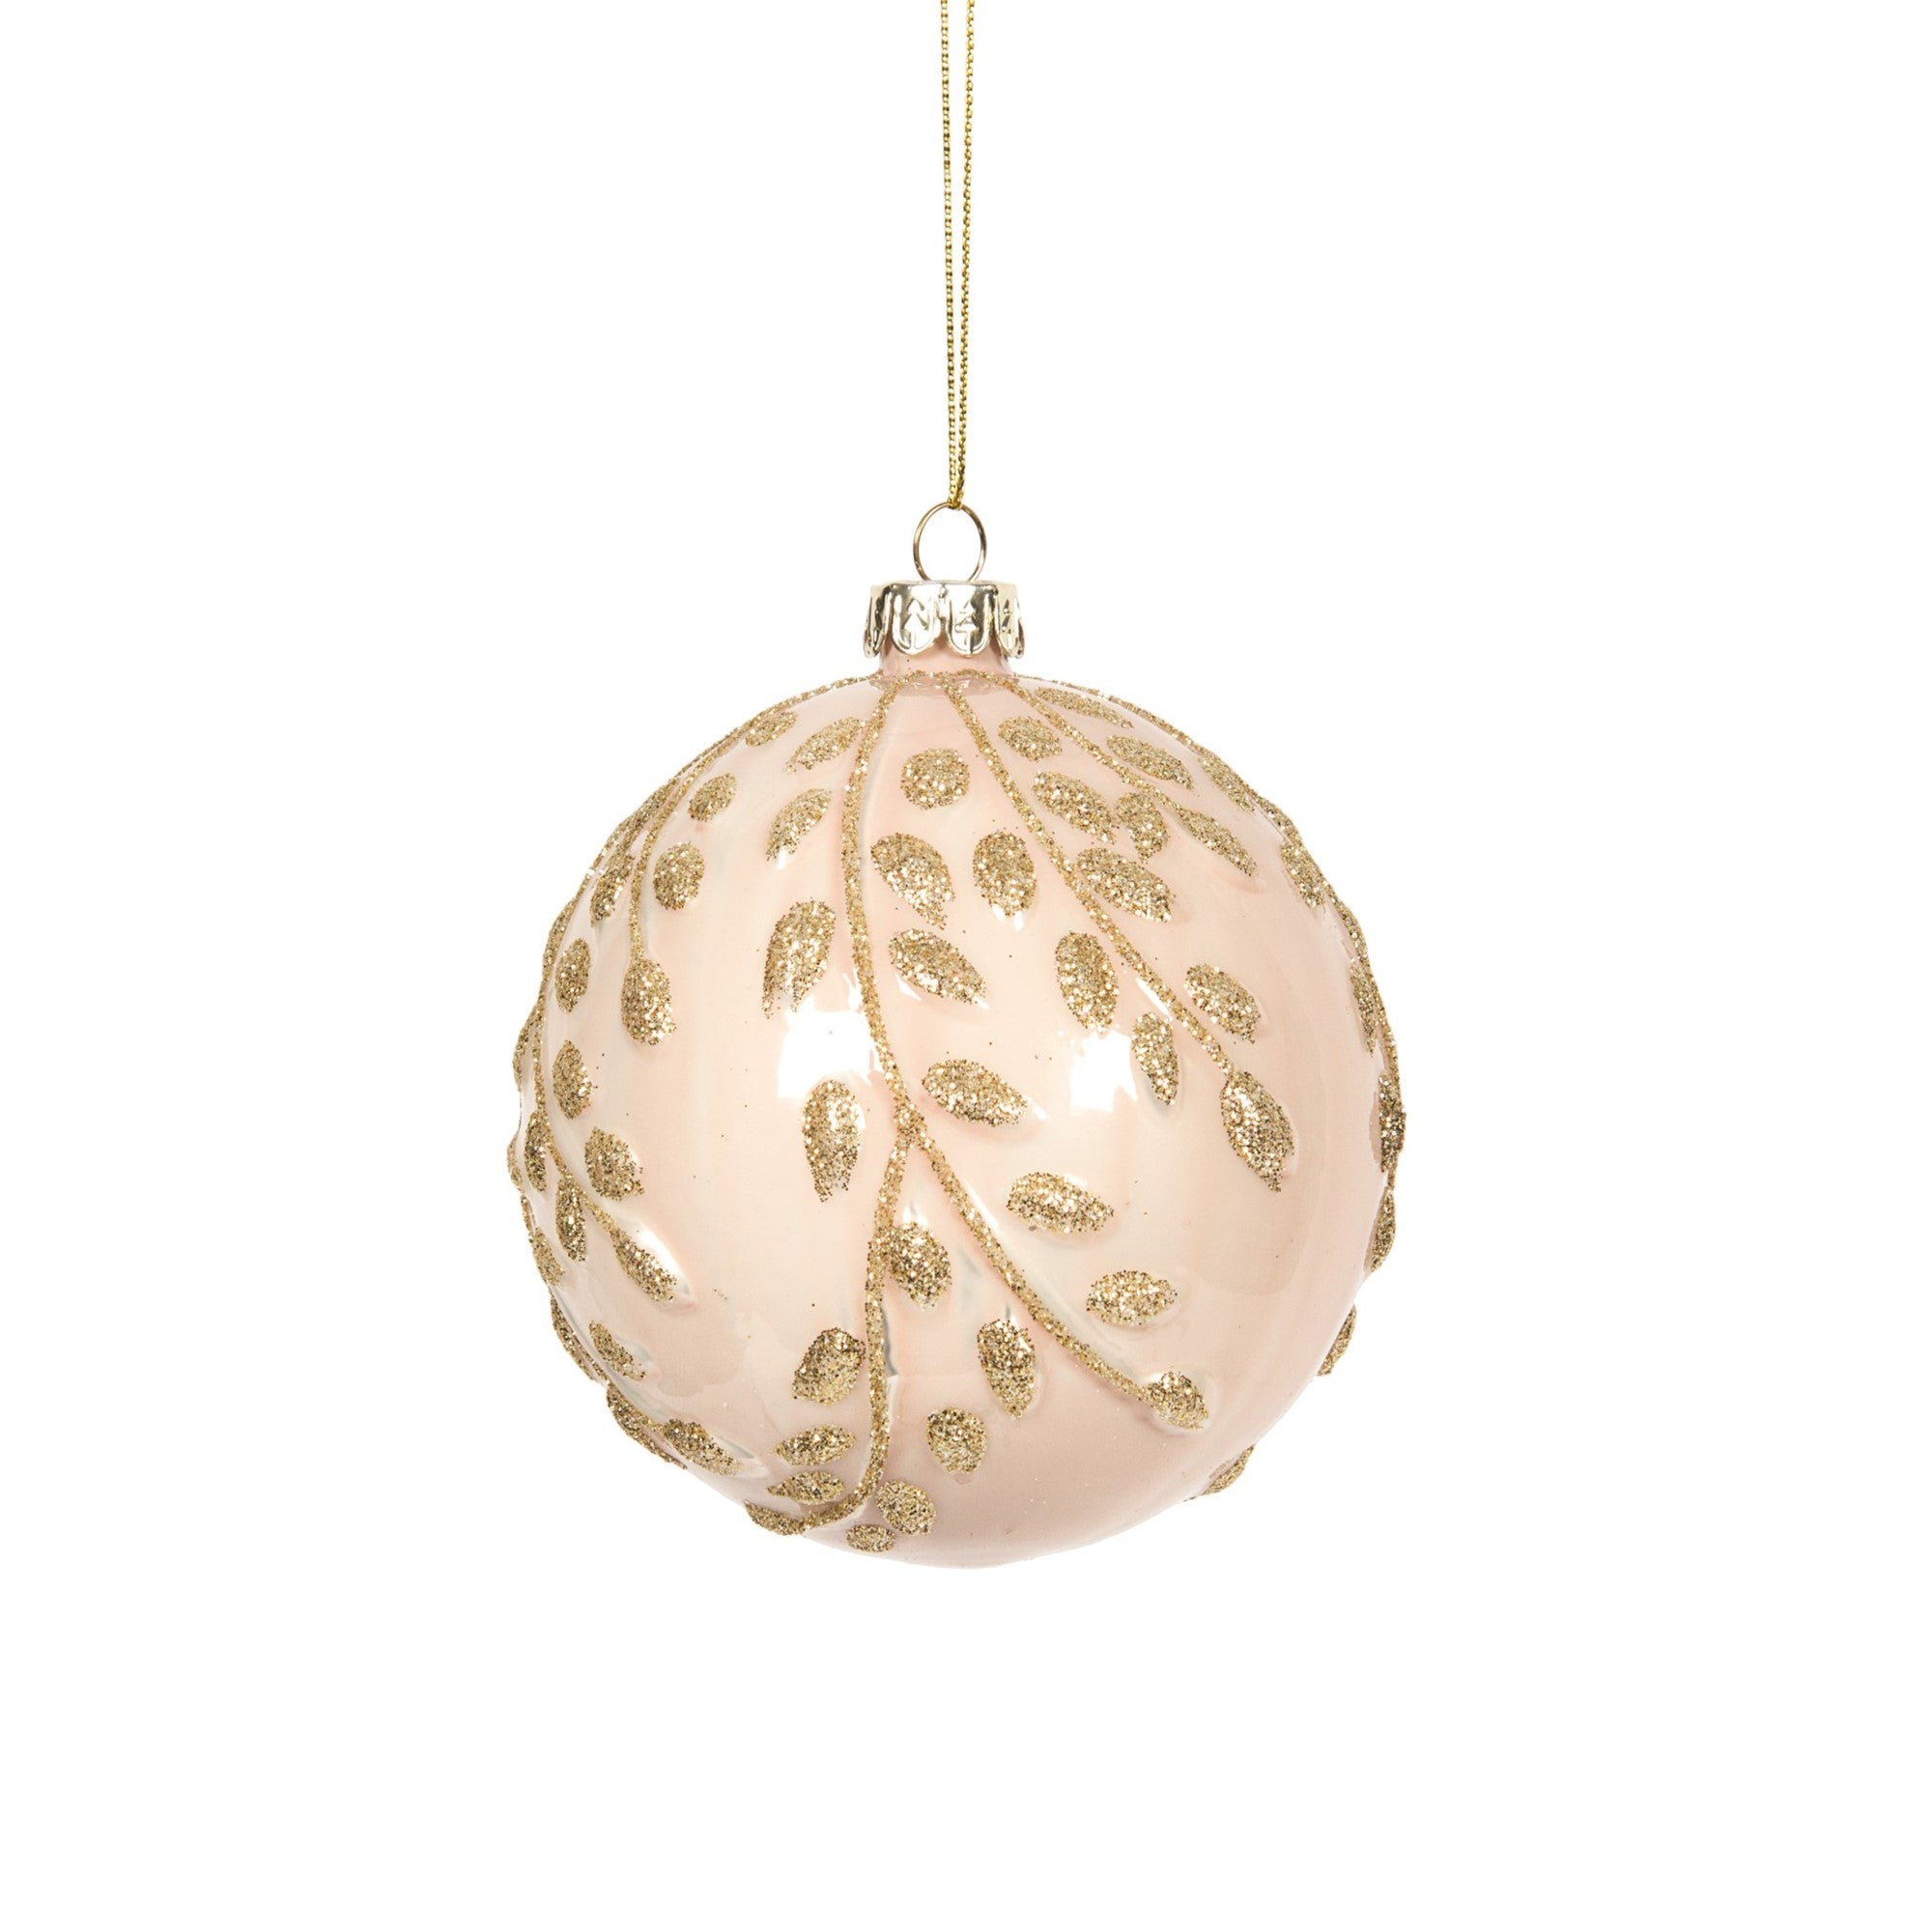 Blush Pink with Gilded Leaves Ball Ornament | Putti Christmas